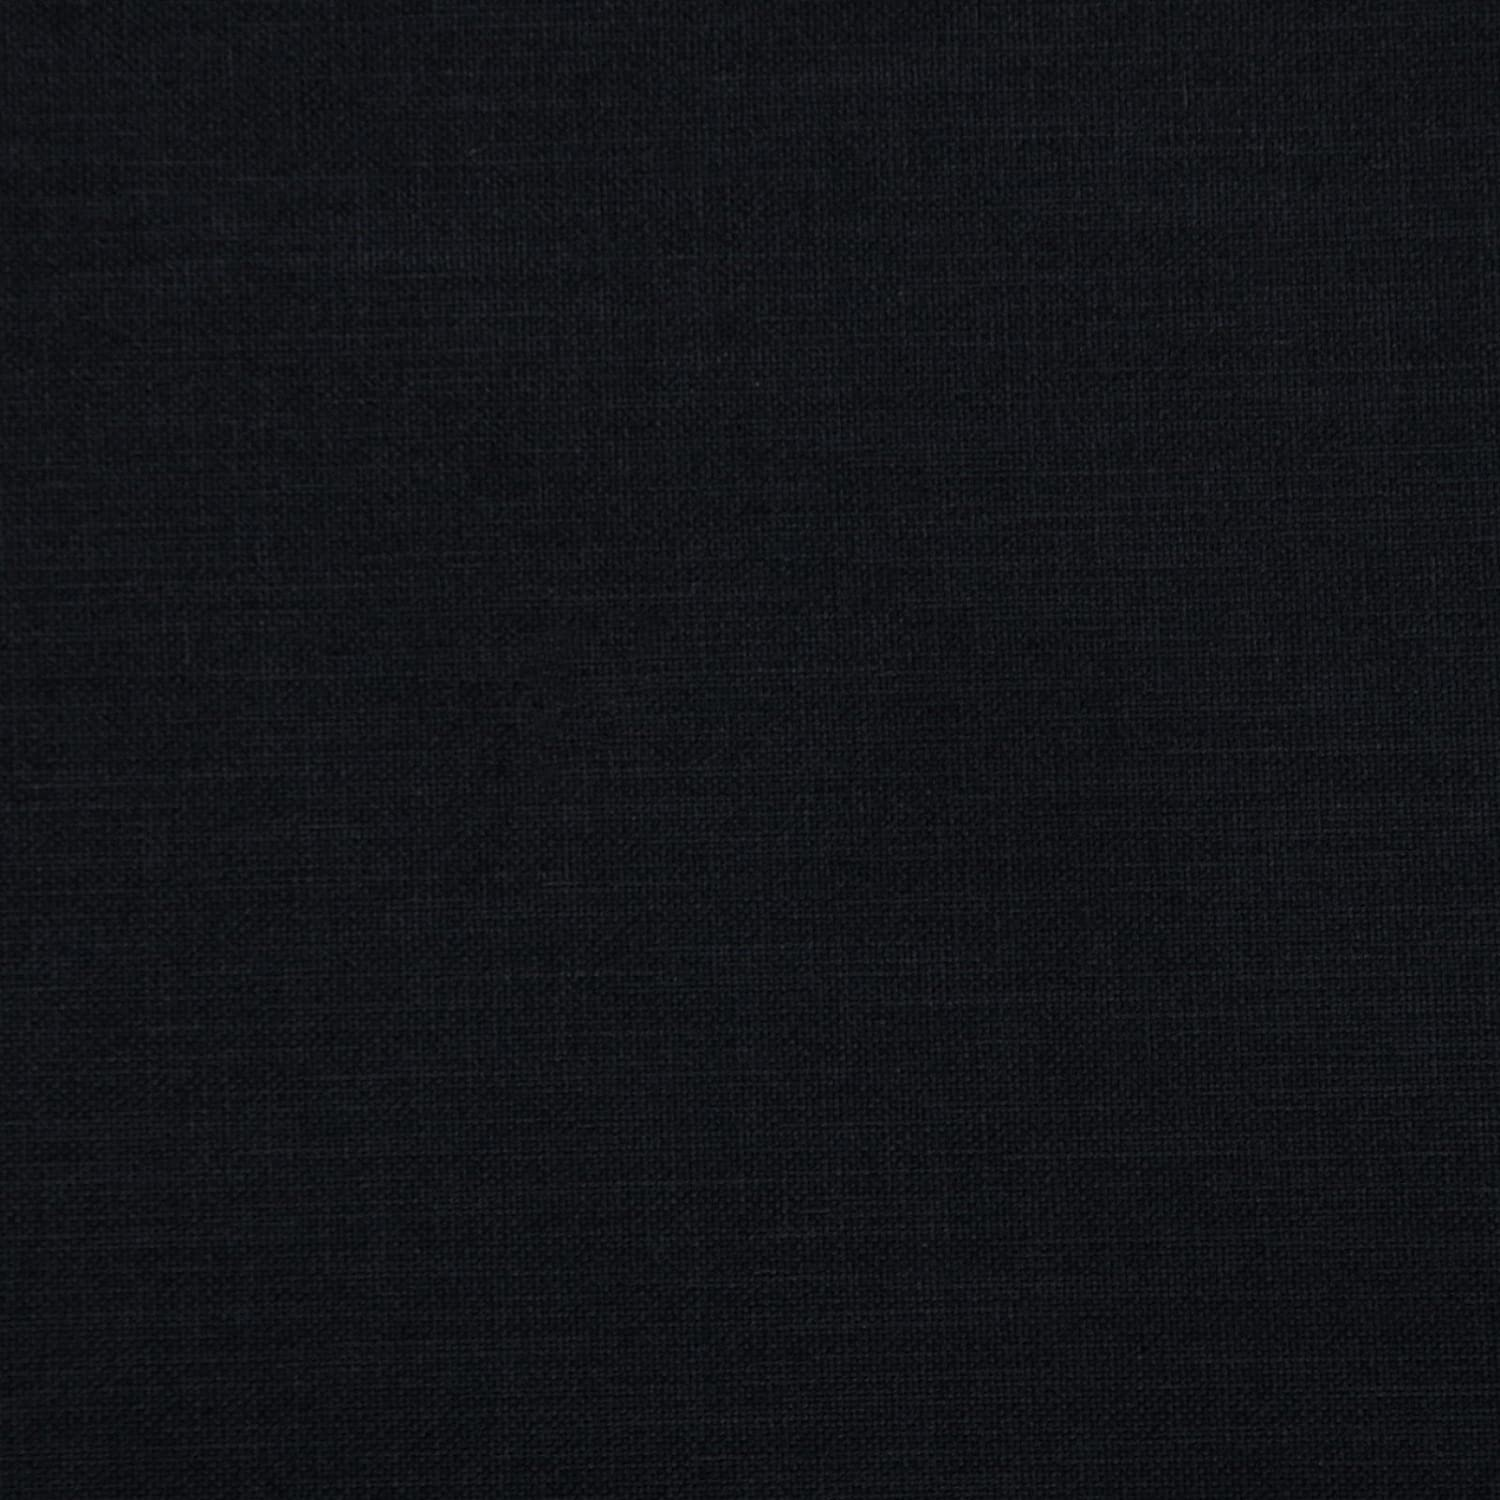 Charcoal Black Solid Linen Super-cheap Upholstery Fabric New sales yard the by